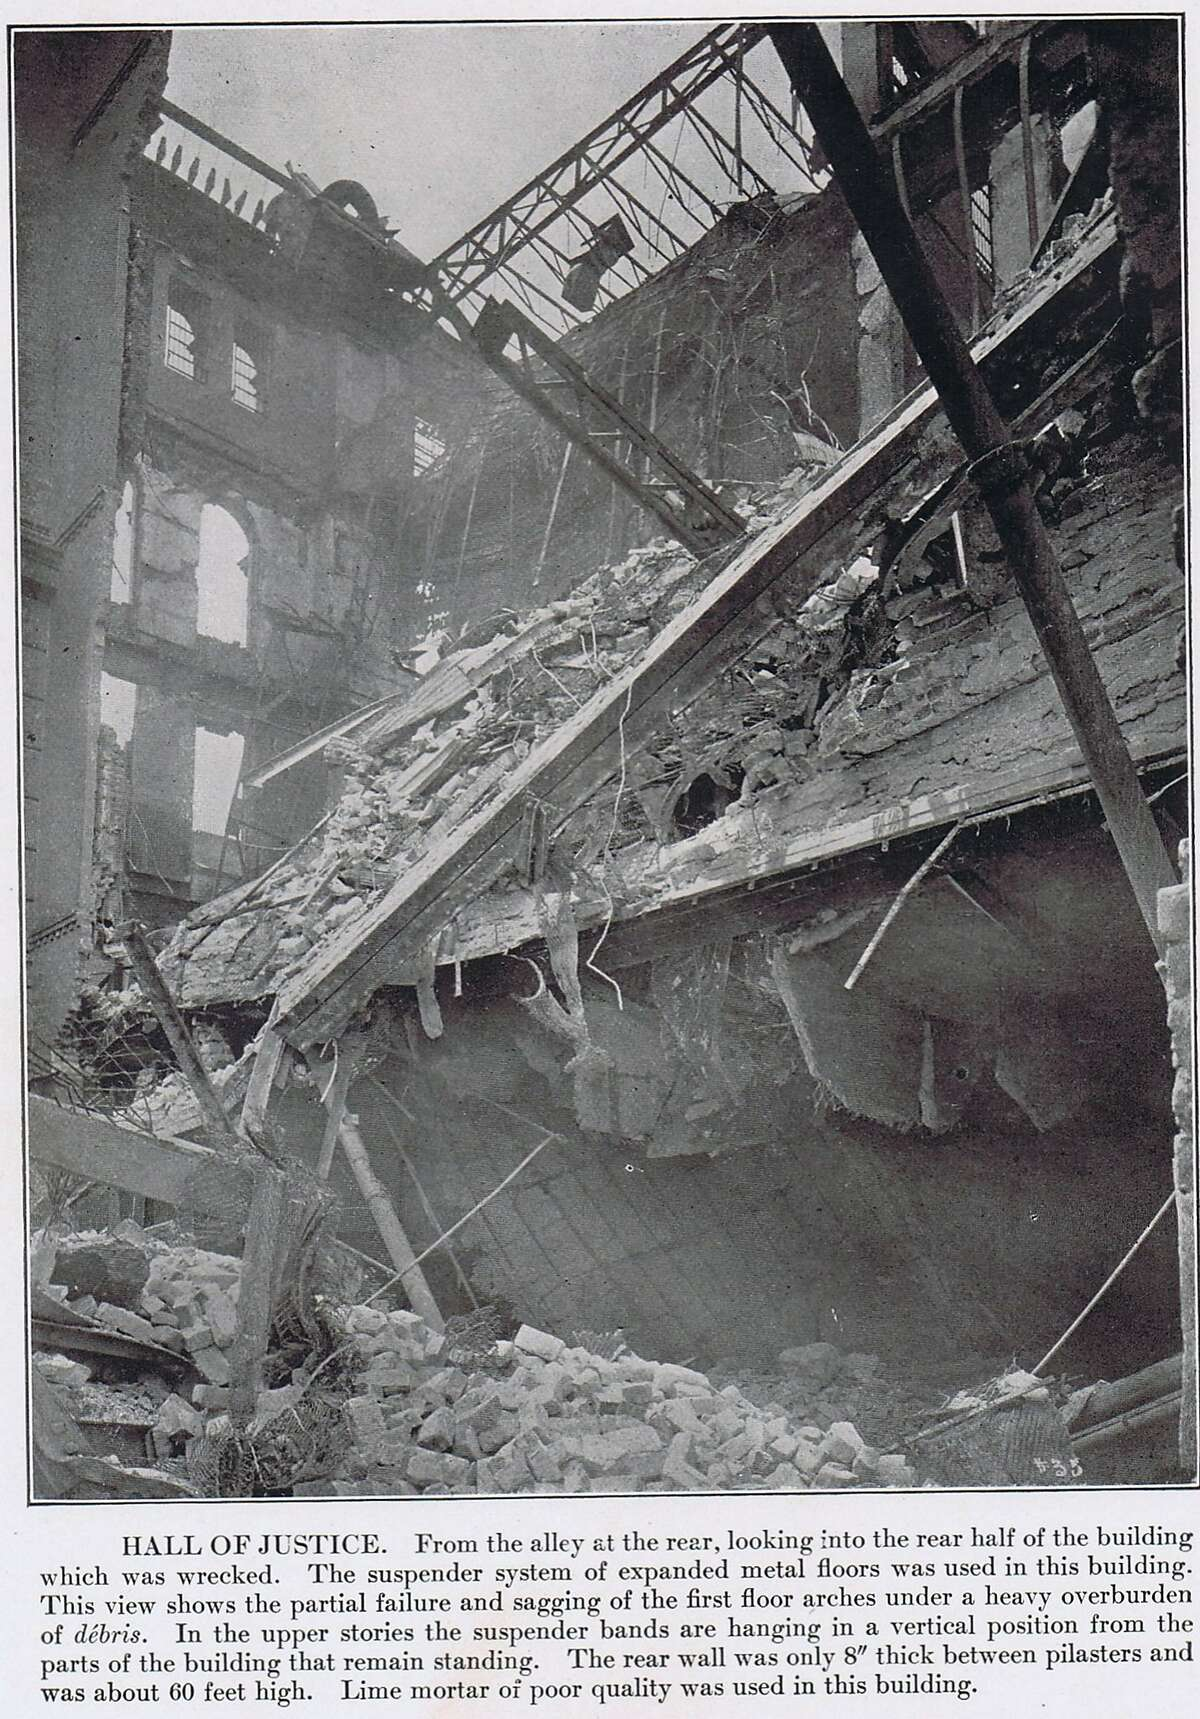 Hall of Justice, seen from the rear alley, showing the wrecked rear half of the building. A suspender system of expanding metal floors was used in this building. The overloading of debris caused much of the damage...